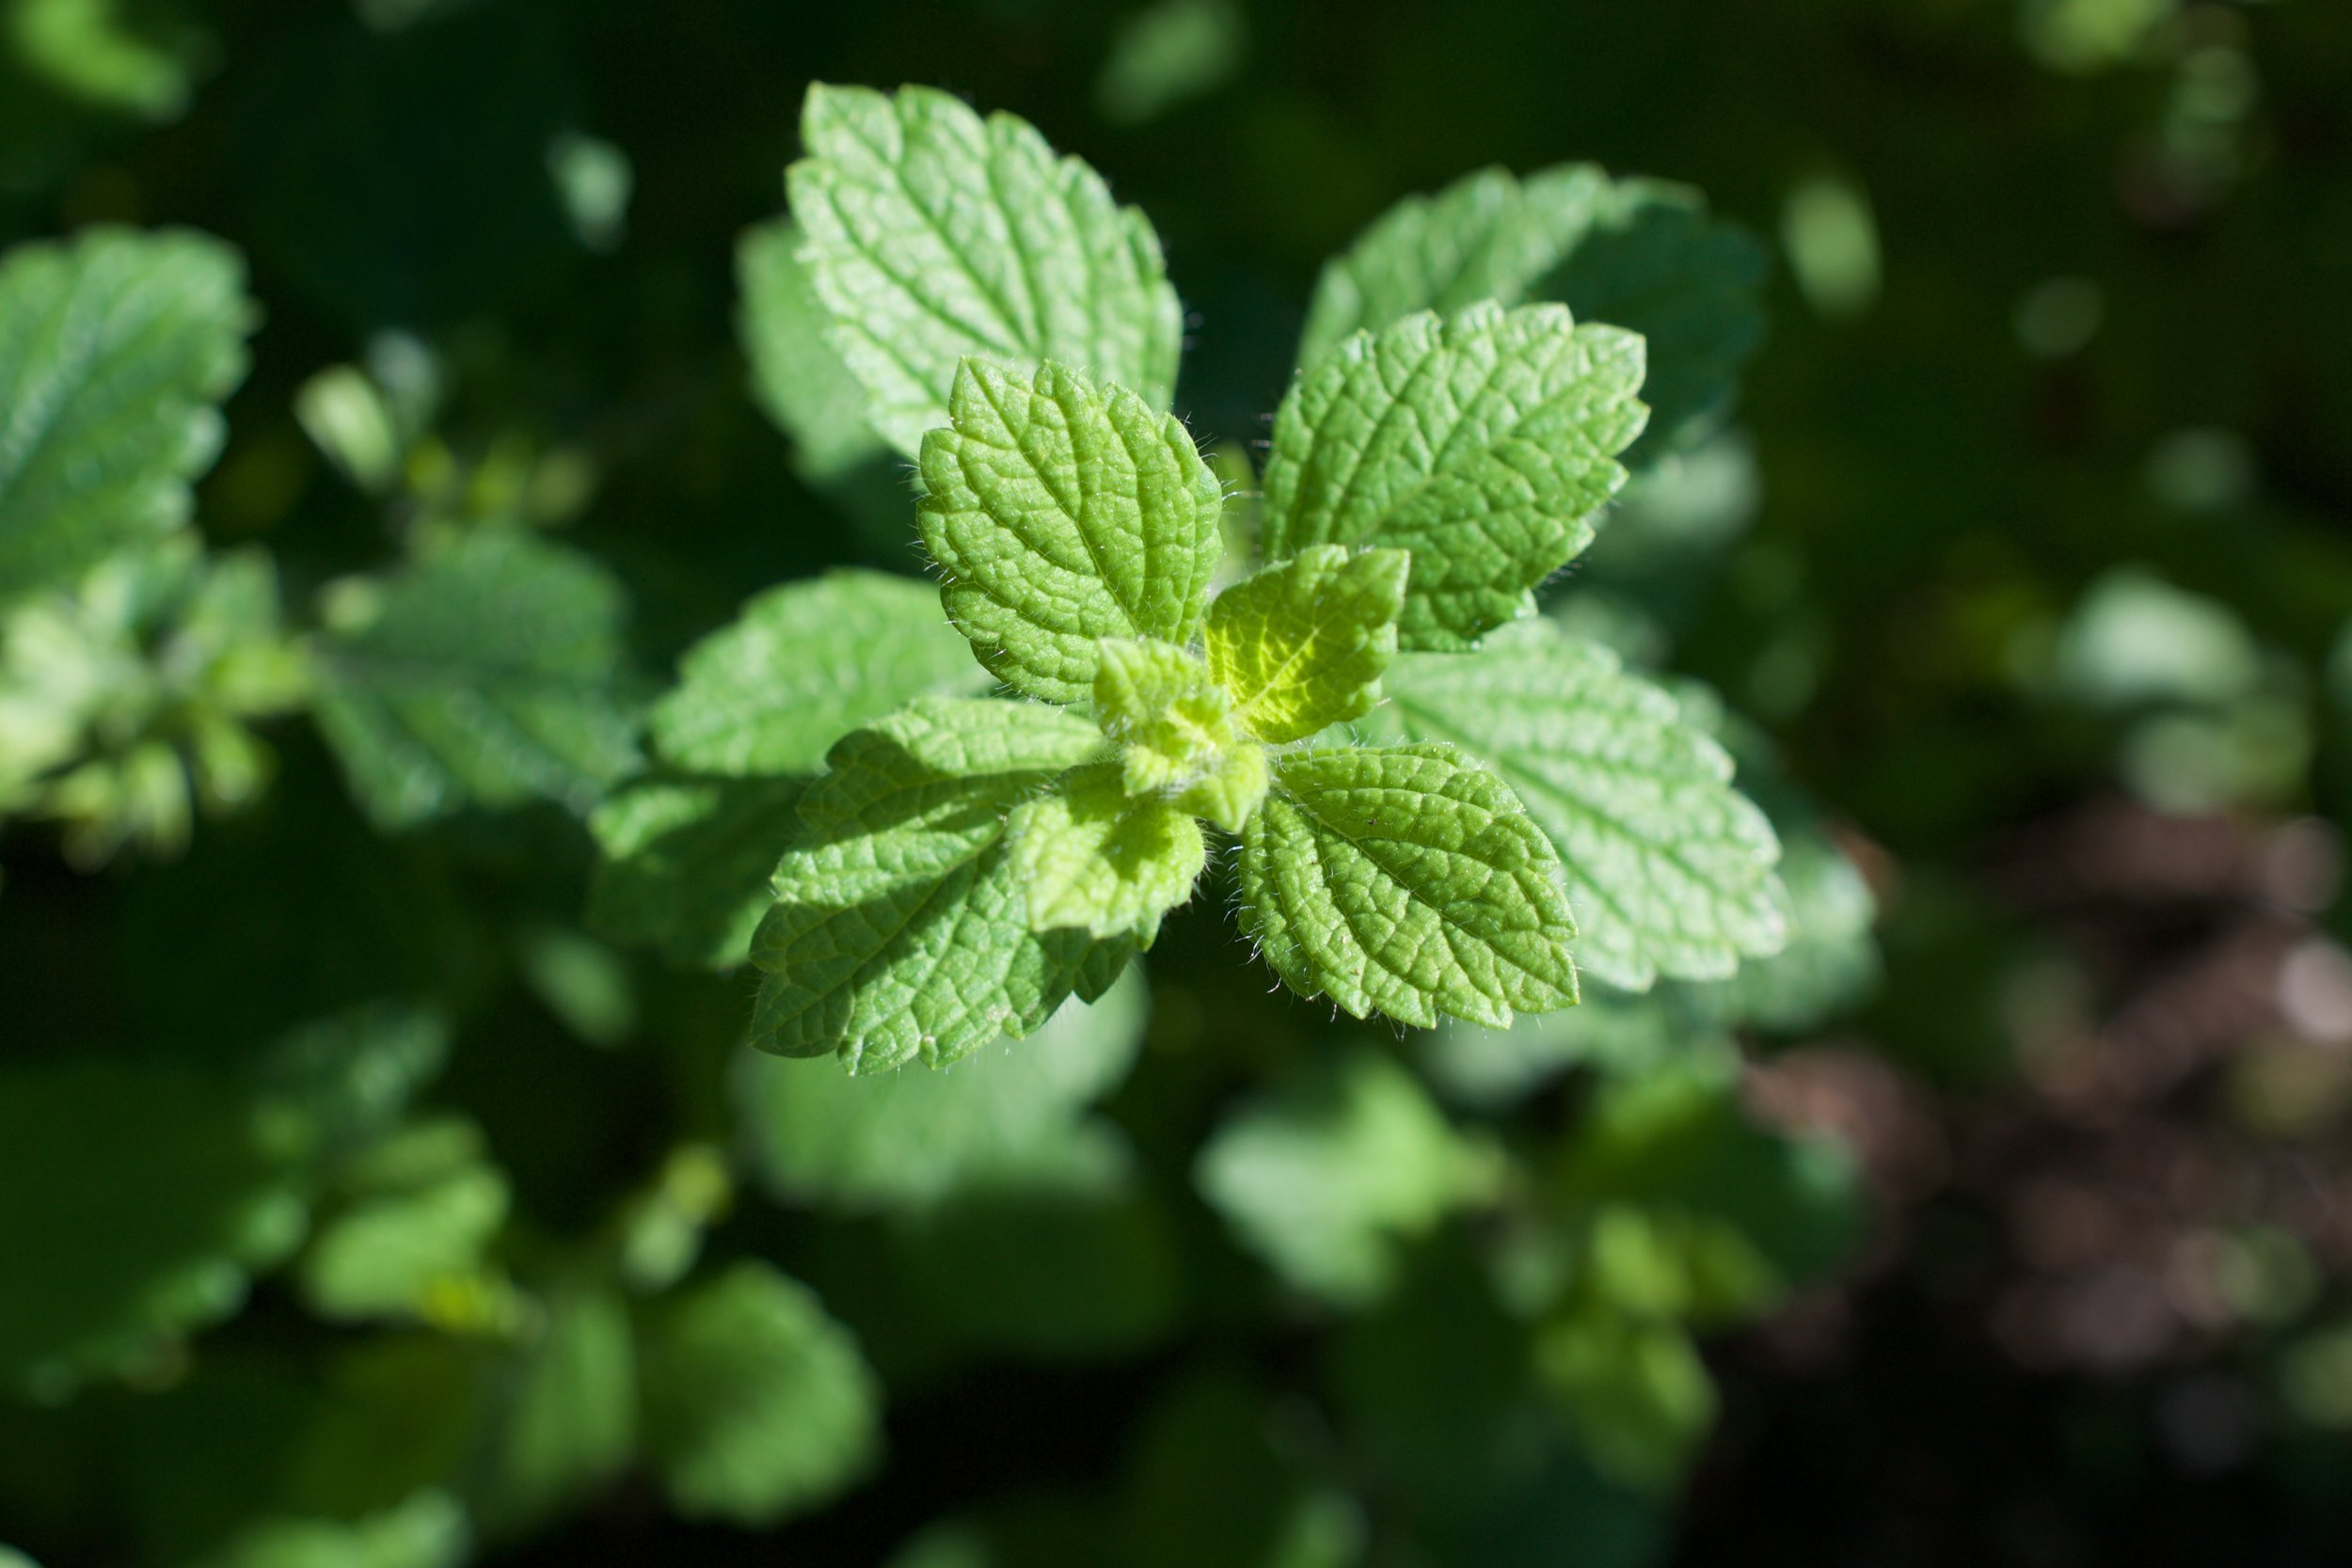 Lemon Balm leaves; veins clearly visible, opposite growth and toothed edges.